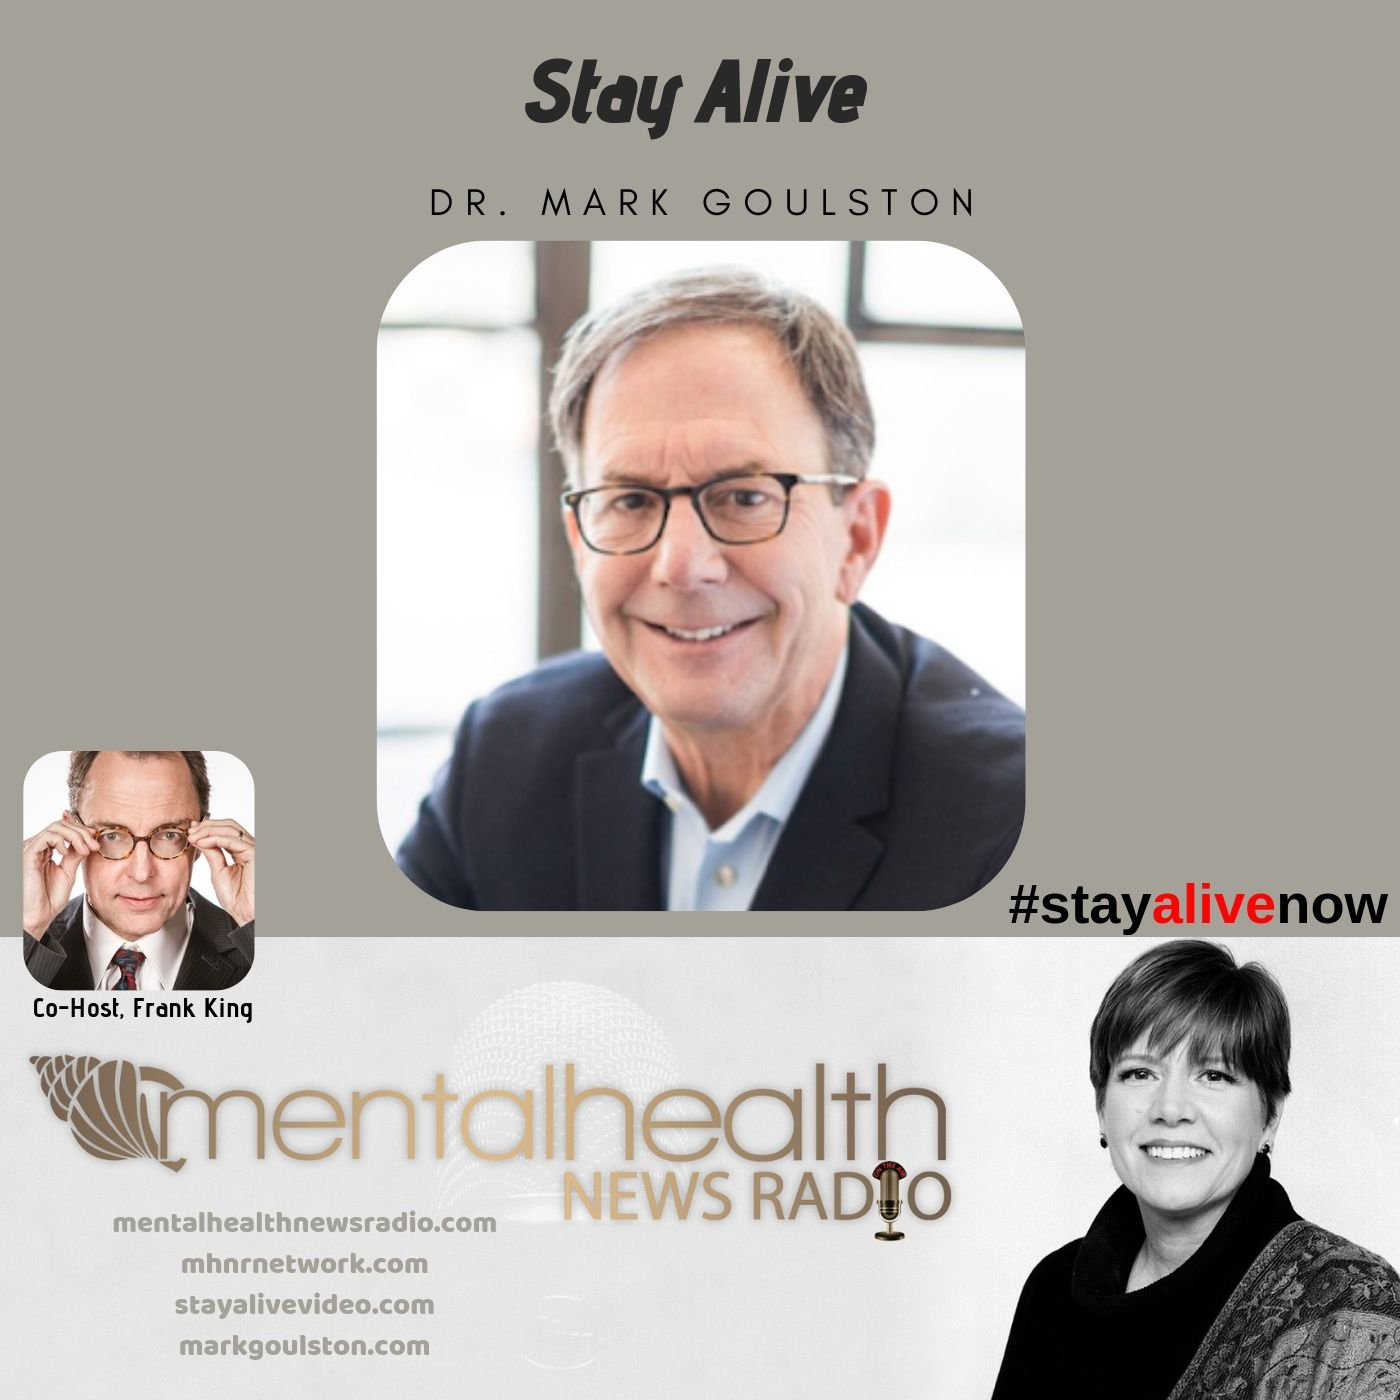 Mental Health News Radio - Stay Alive with Dr. Mark Goulston